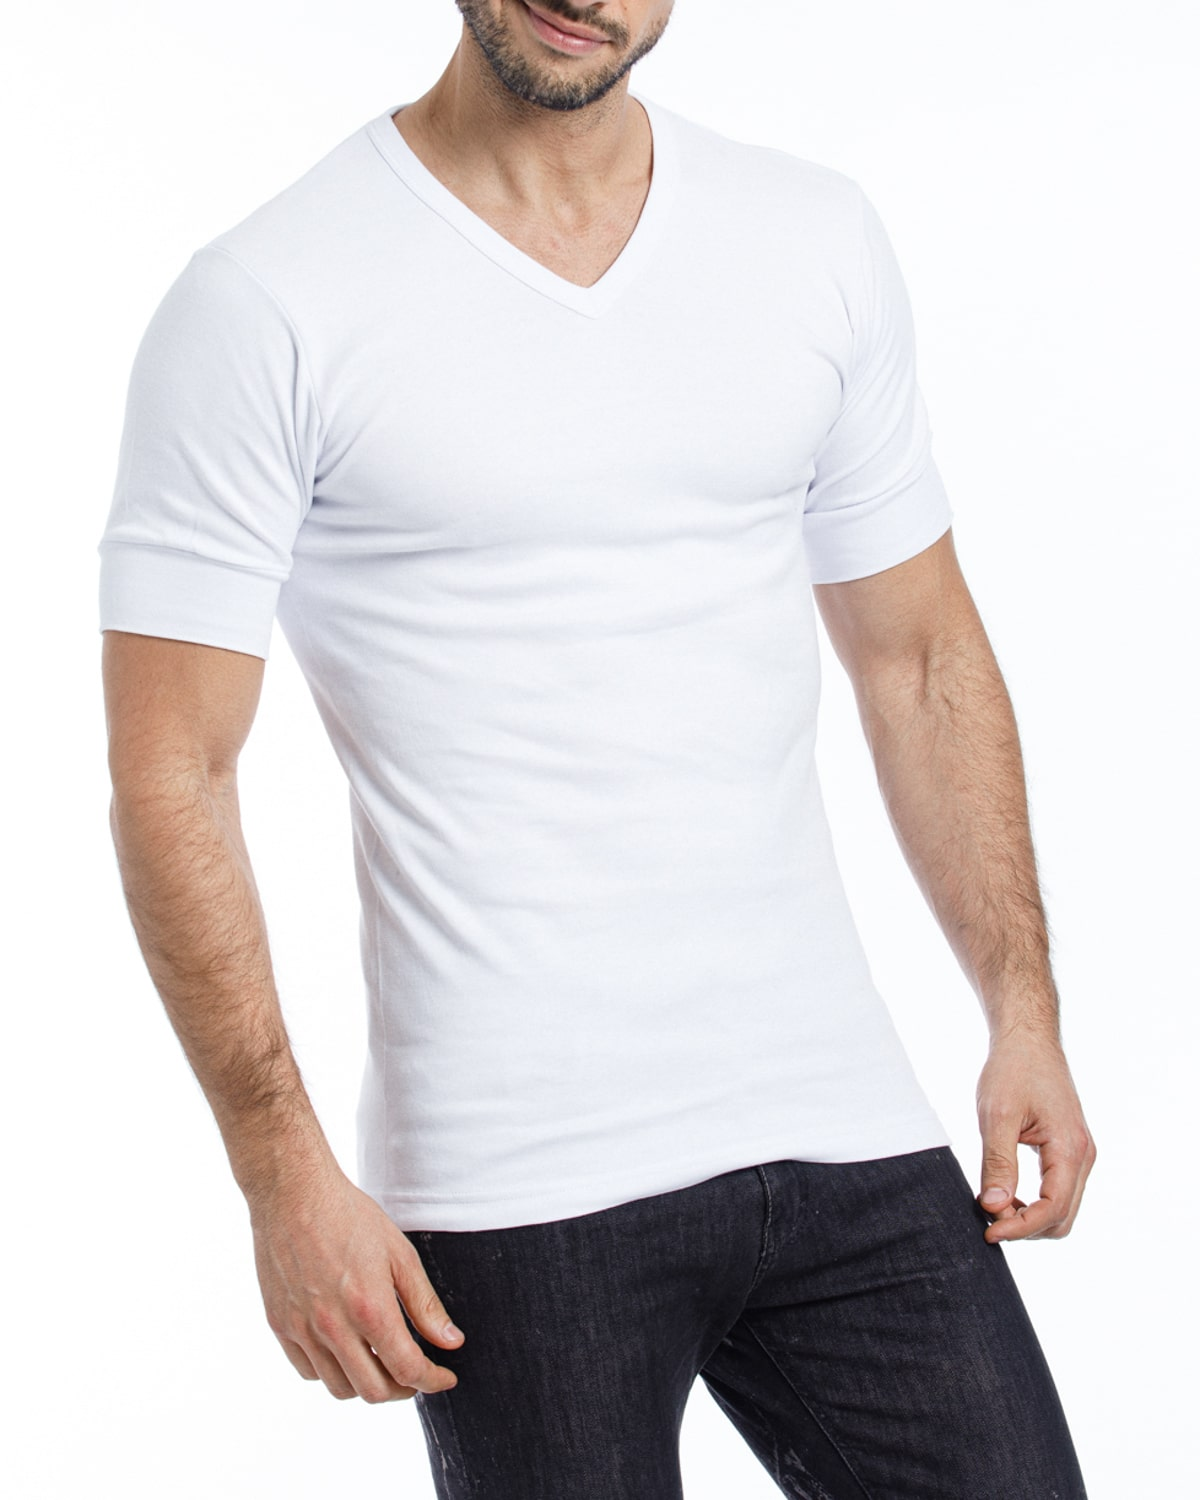 Camiseta Interlock  172